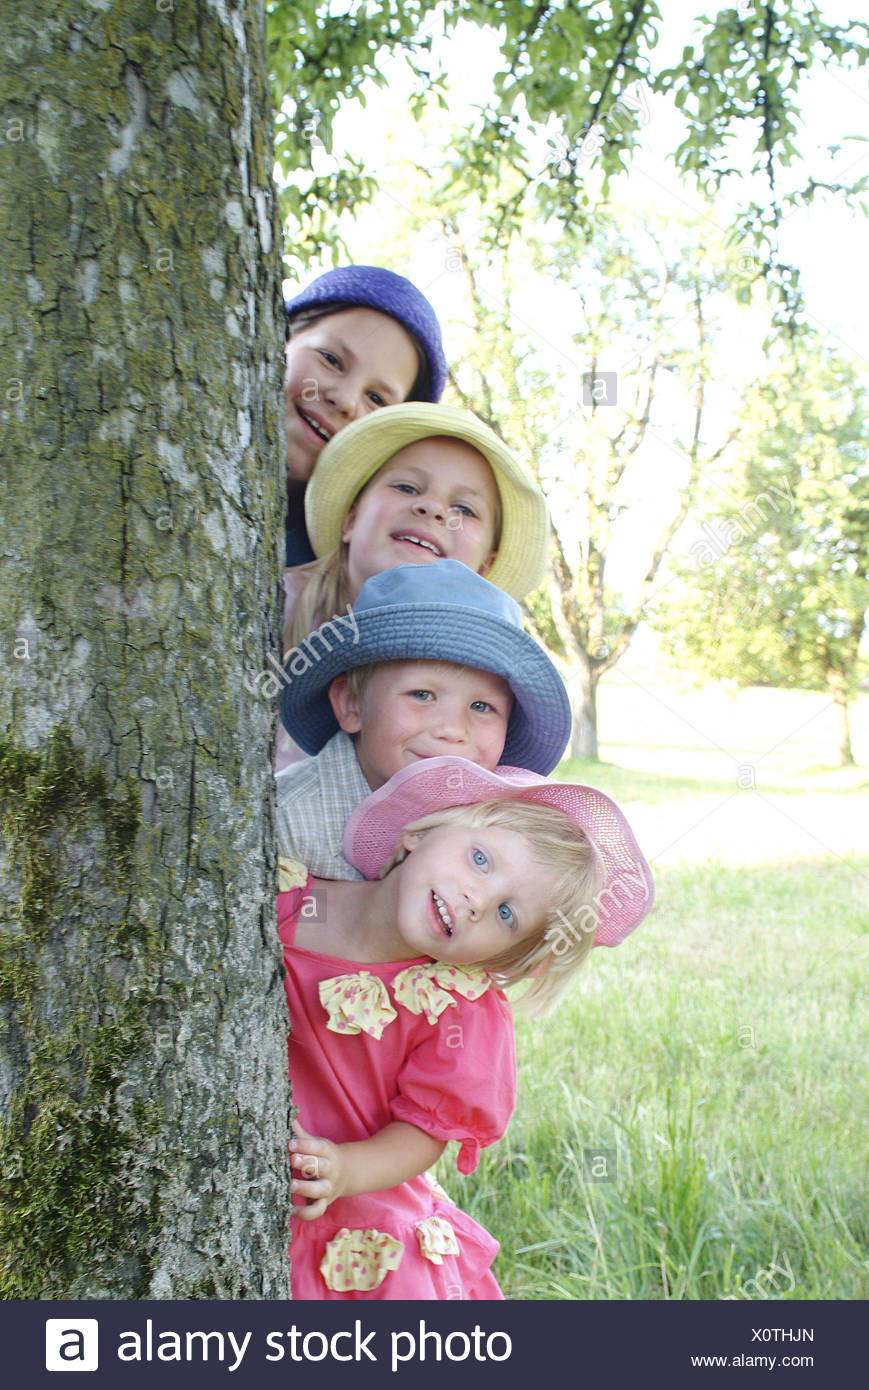 Log, girls, boy, smiles,  forth-sees, portrait,   Child portrait, children, siblings, friends, four, 4-12 years, hats, headgears, gaze camera, fun, happiness, childhood, 'organ pipes', summers, outside, nature, tree, trunk, - Stock Image